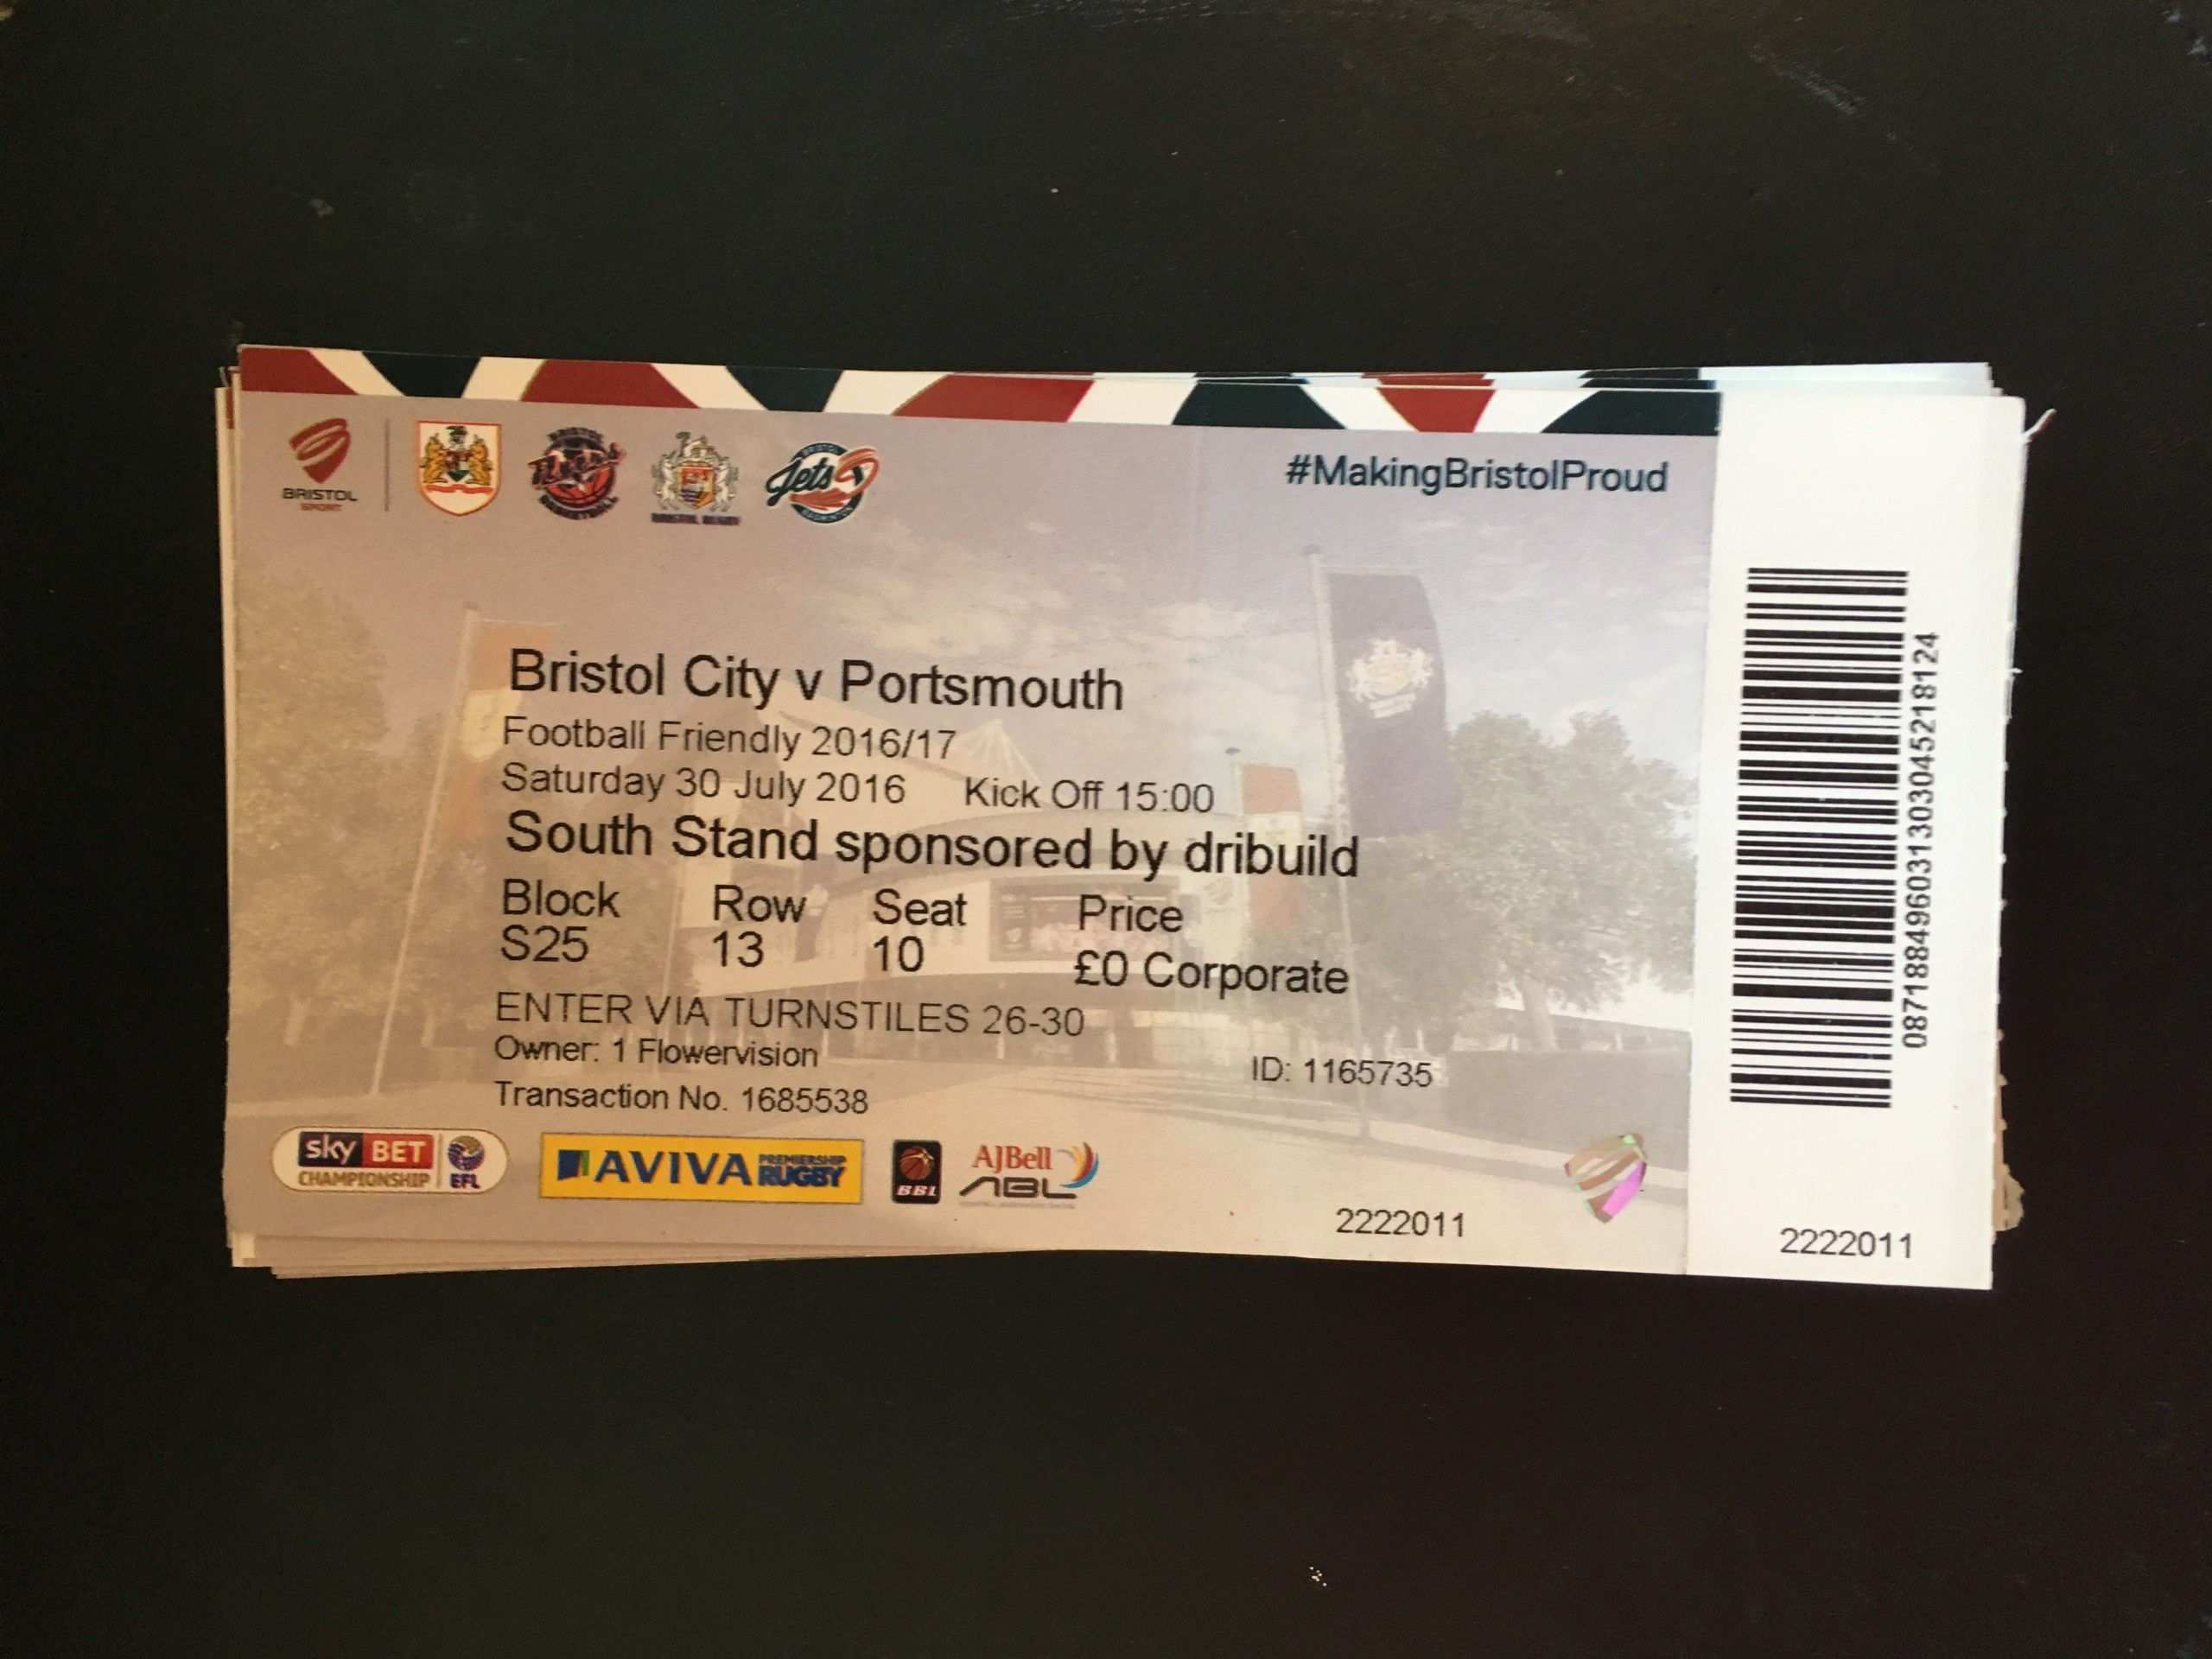 Bristol City v Portsmouth 30-07-2016 Ticket